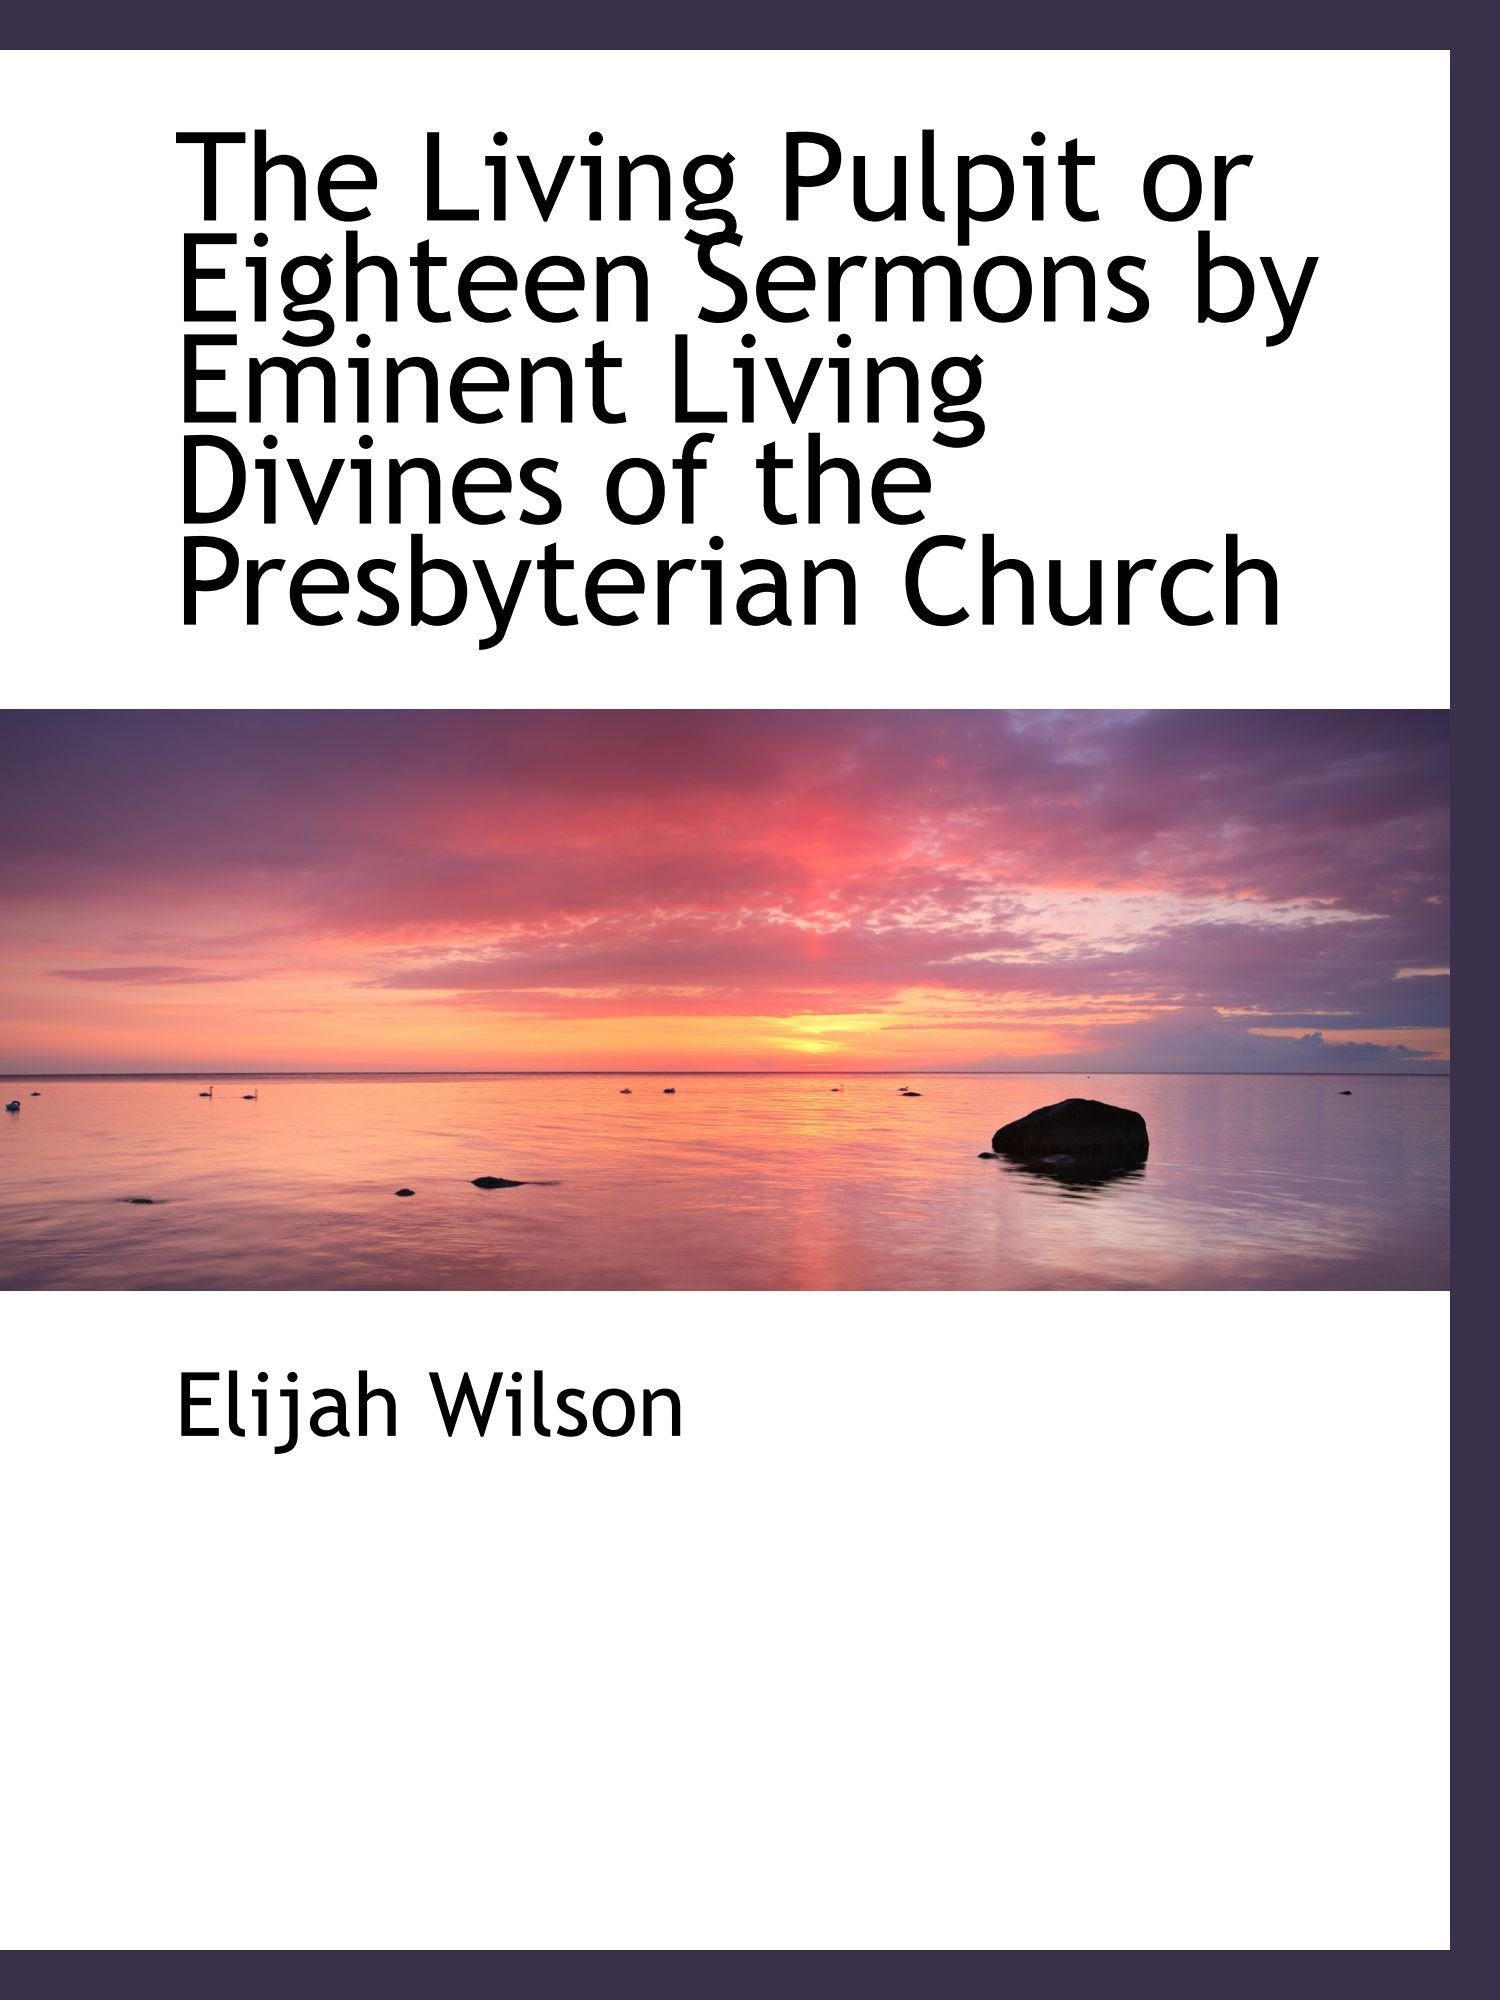 The Living Pulpit or Eighteen Sermons by Eminent Living Divines of the Presbyterian Church pdf